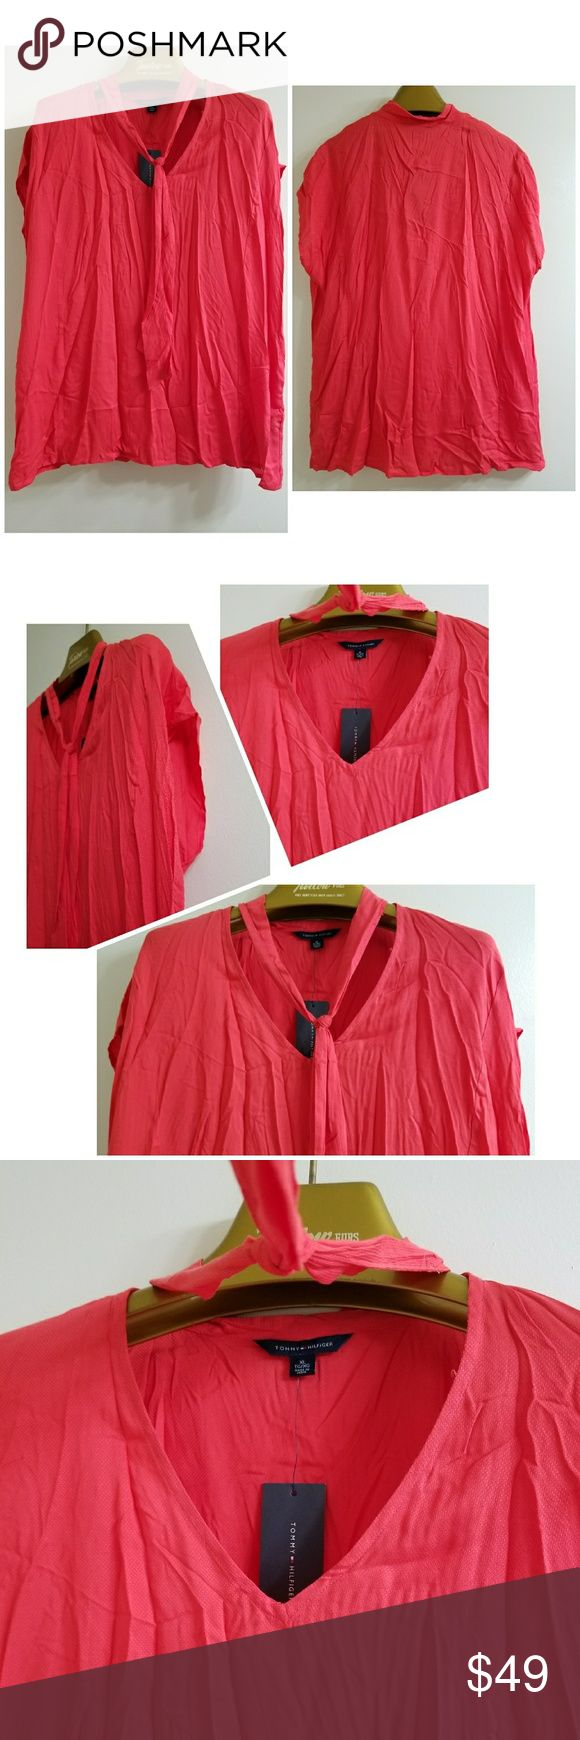 "NWT Tommy Hilfiger Women's Coral Casual Top Up for sale is this beautiful Tommy Hilfiger coral top. This top is brand new with tag. It is sleeveless, has a tie neck.  Kept in a smoke, pet- free environment.   Size: XL Color: Coral Fabric:   Lining:  Design:  Sleeves: Sleeveless Materials: 100% Viscose  Neckline: v-neck  Measurements (approximate)  Length: 27""  Underarm to underarm: 22 1/2""  Condition: New With Tags Tommy Hilfiger Tops Blouses"